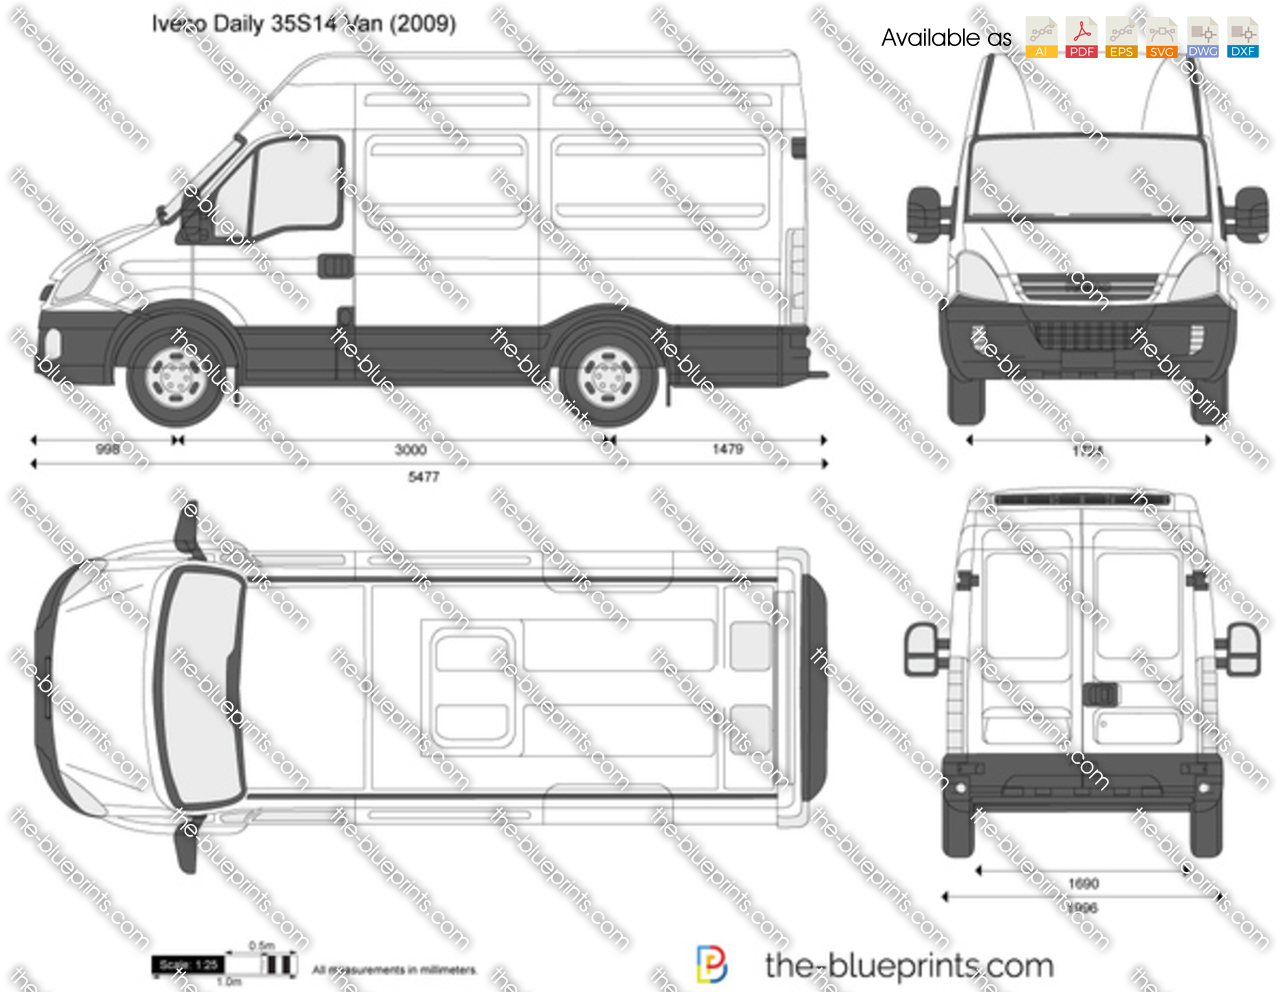 Iveco Daily 35s14 Van Vector Drawing